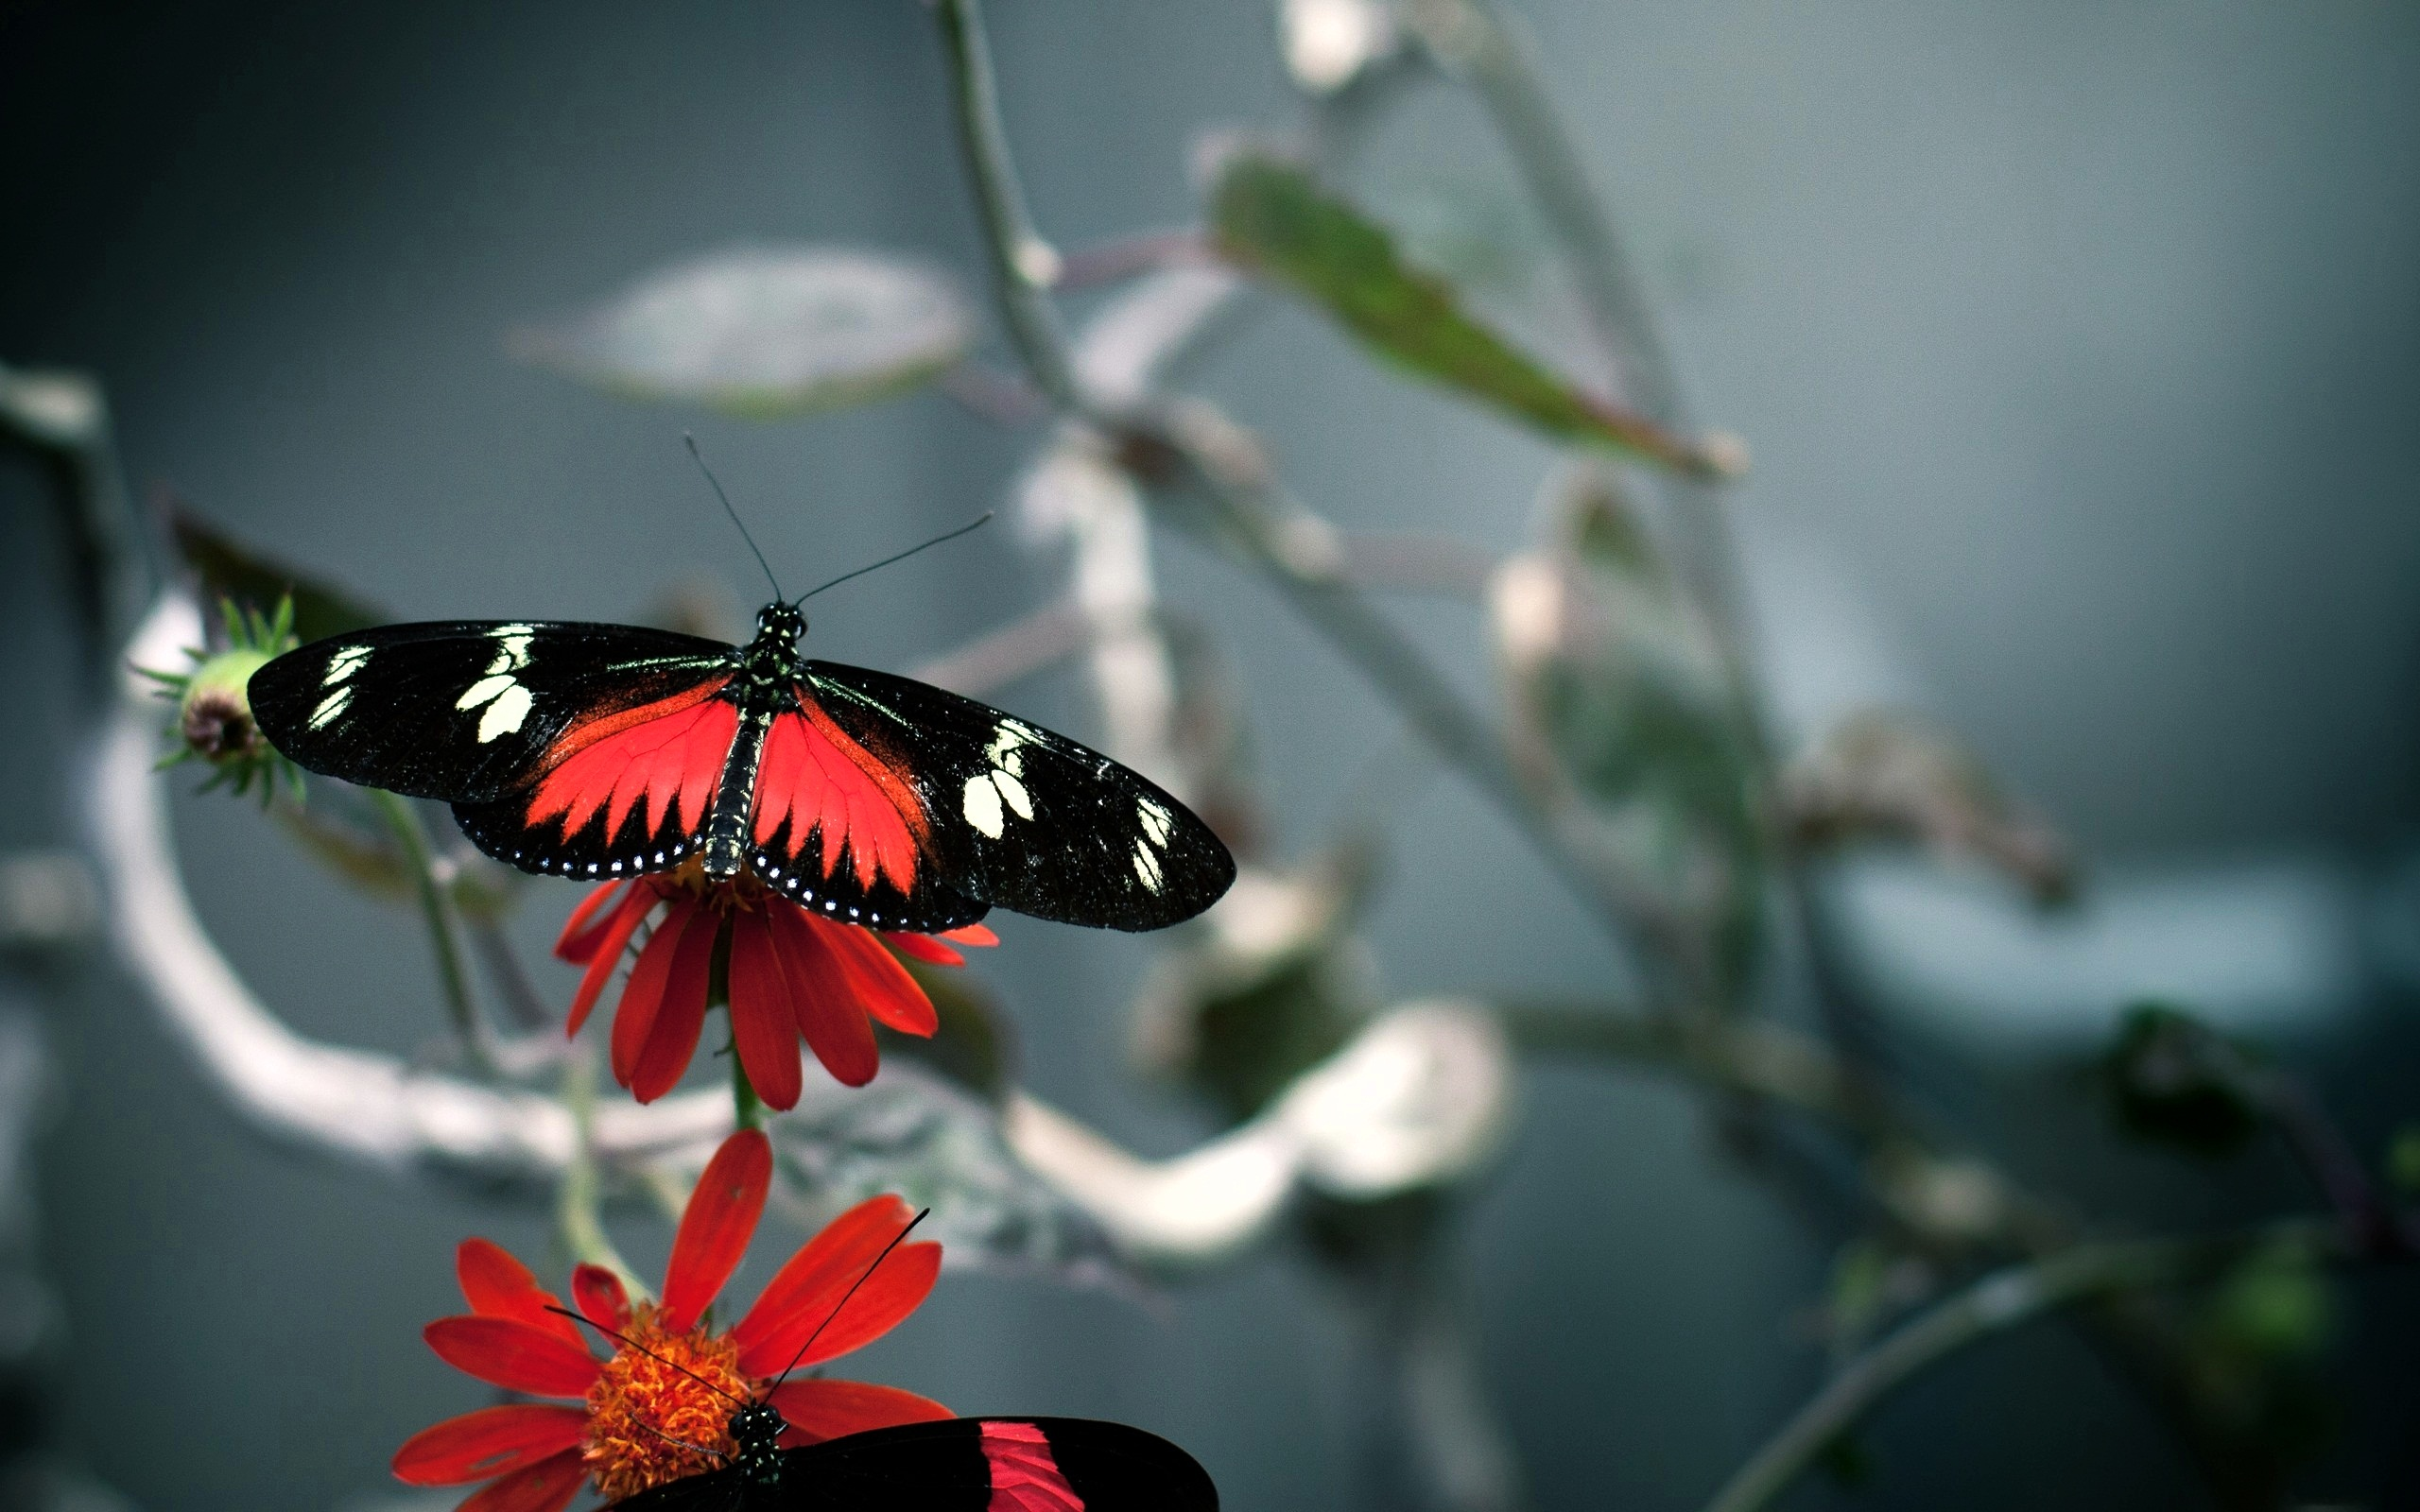 1600 879 kB jpeg HD desktop 3d butterfly wallpaper for Notebook 2560x1600